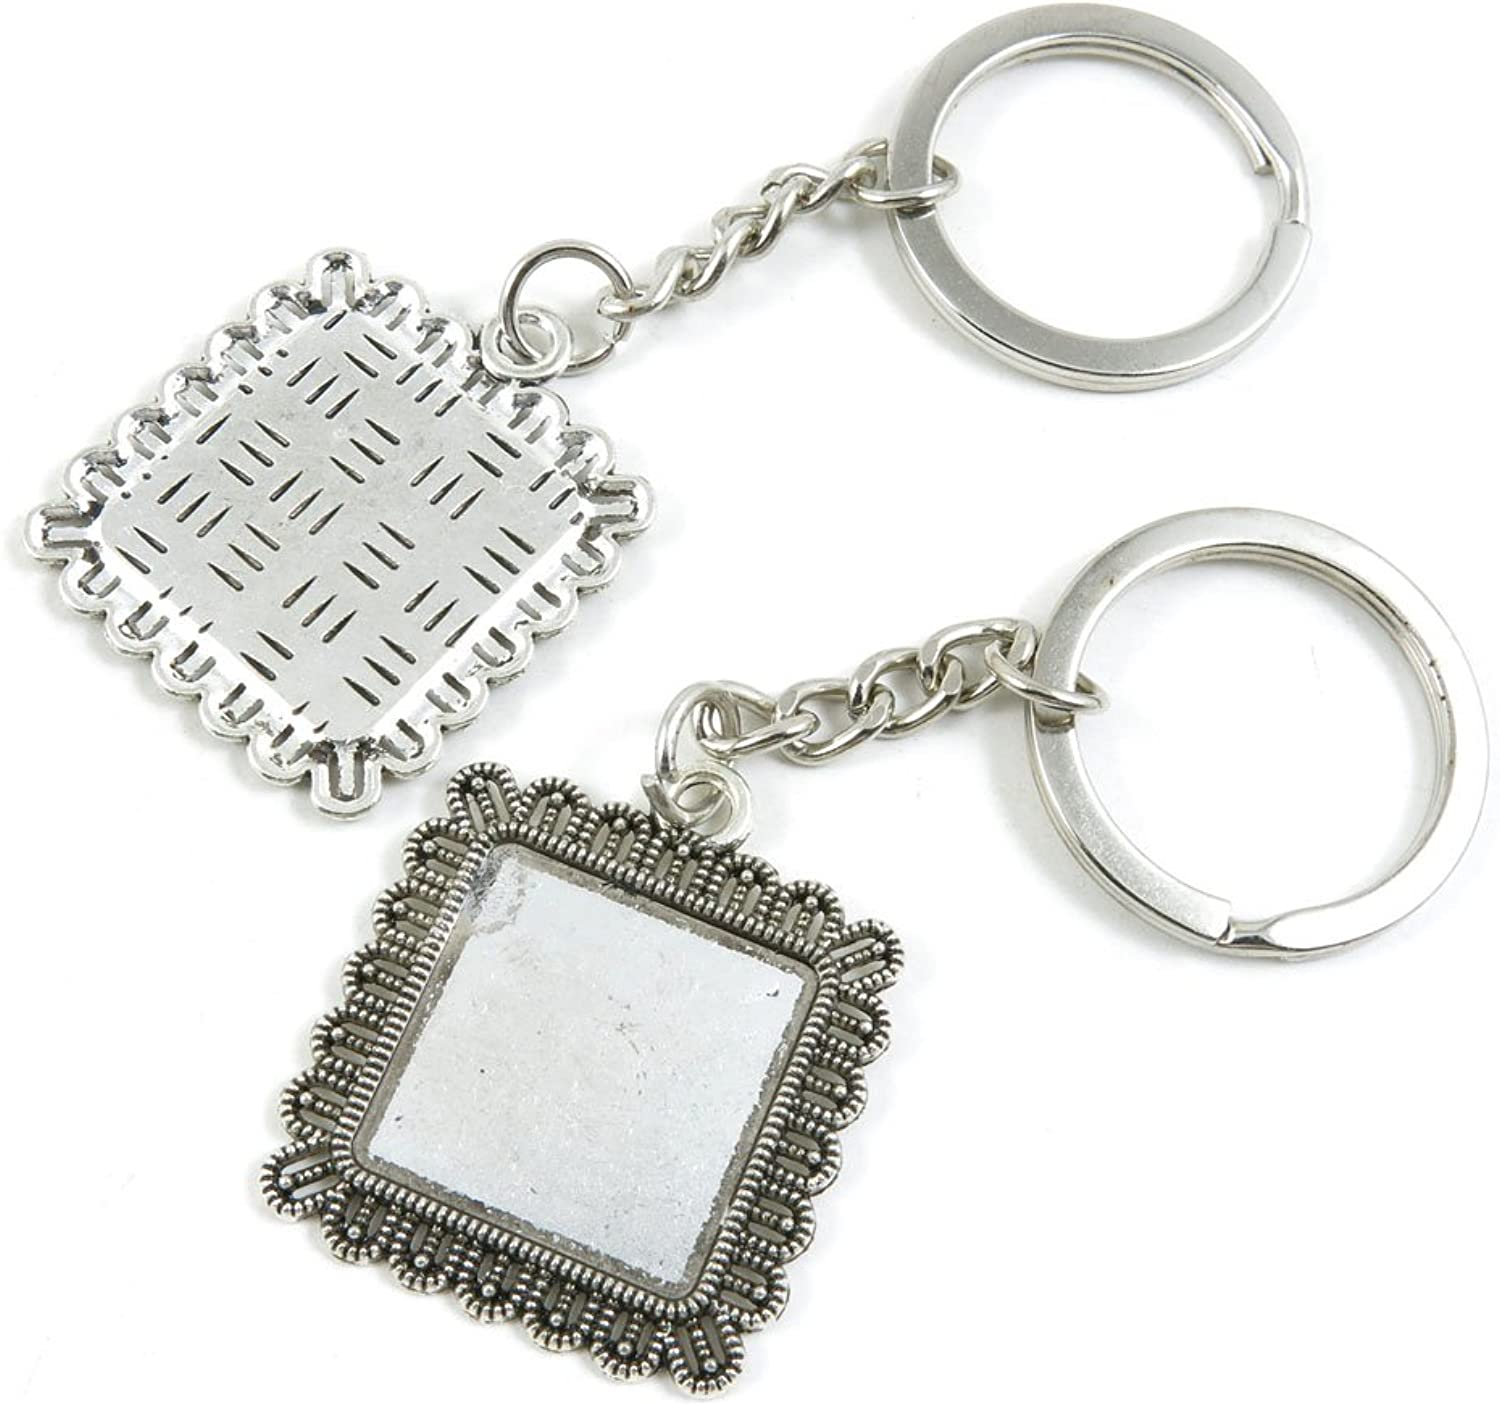 100 Pieces Keychain Keyring Door Car Key Chain Ring Tag Charms Bulk Supply Jewelry Making Clasp Findings T8MR7N Square Cabochon Base Blank 20mm